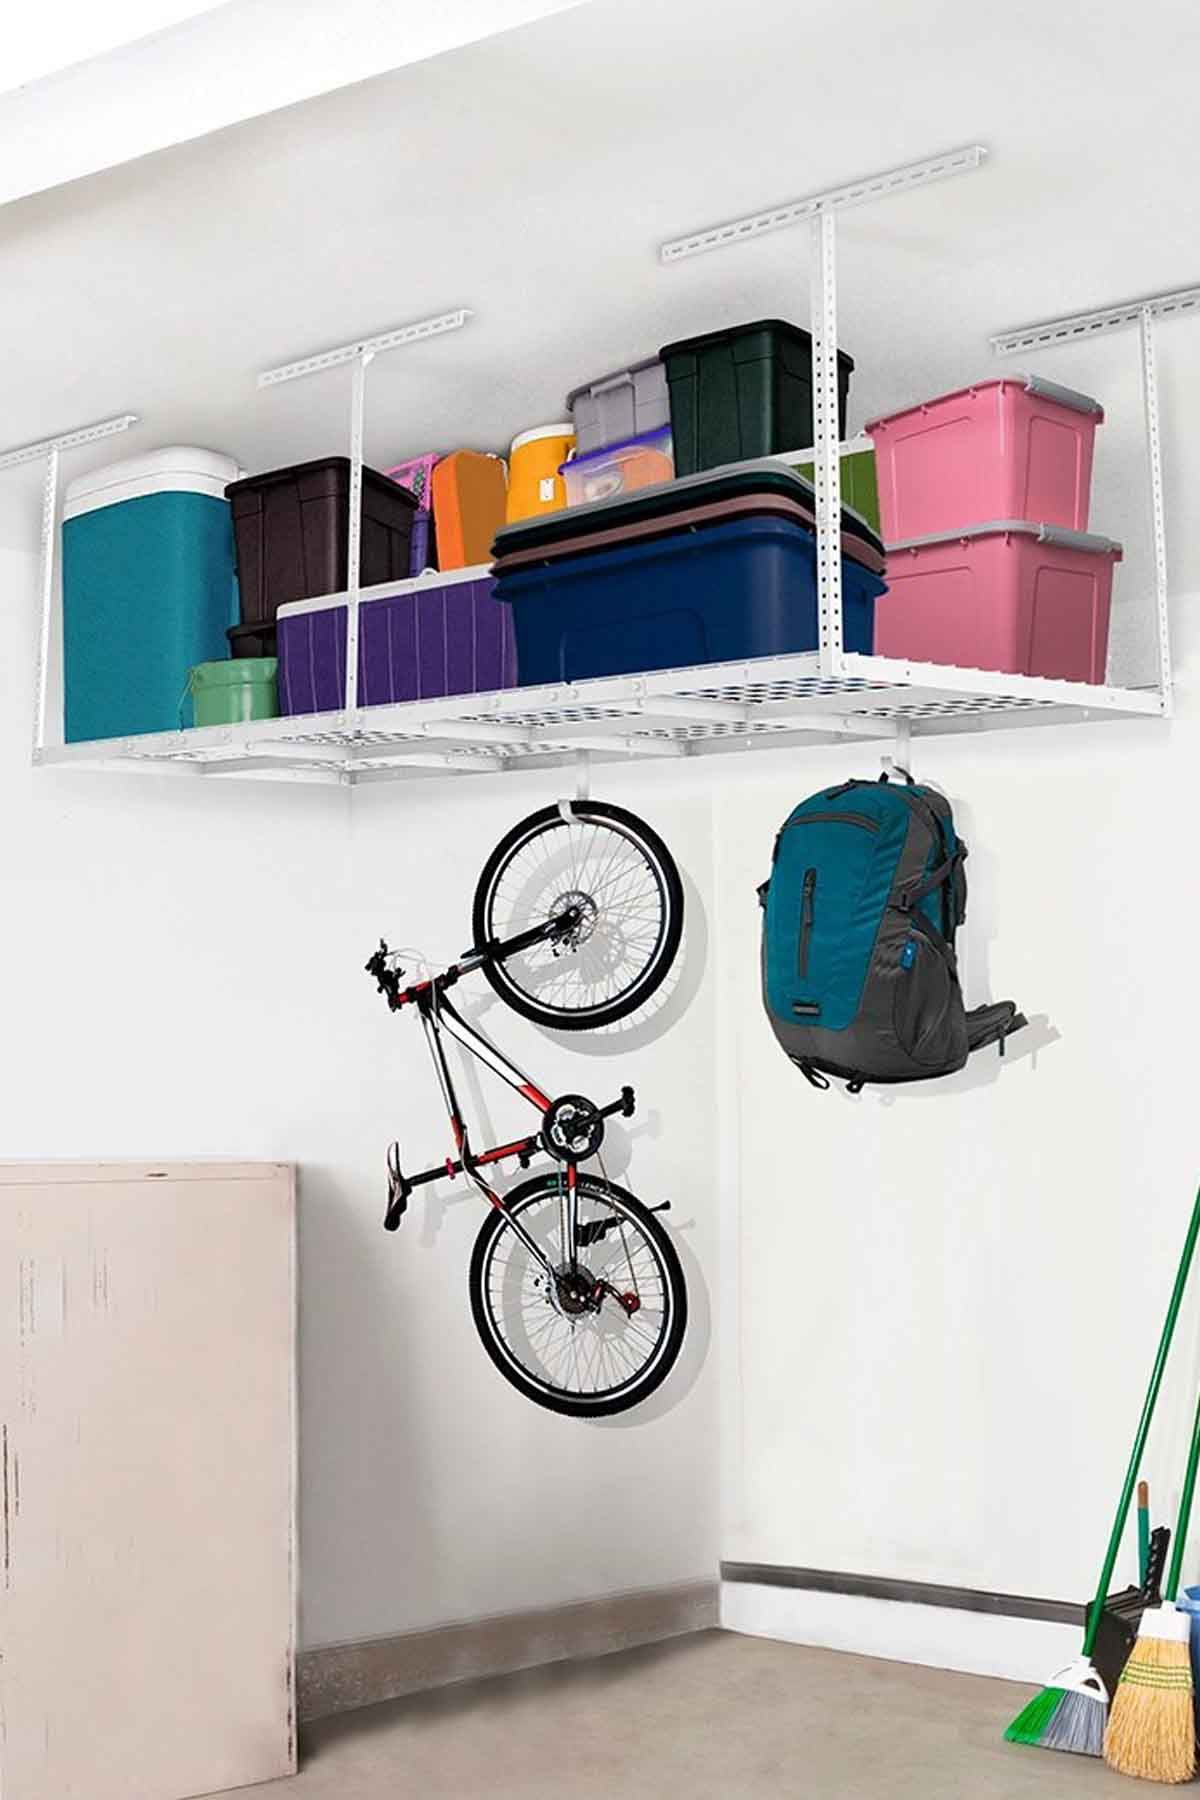 Tidy Garage Bike Rack Installation 20 Garage Organization Ideas Storage Solutions And Tips For